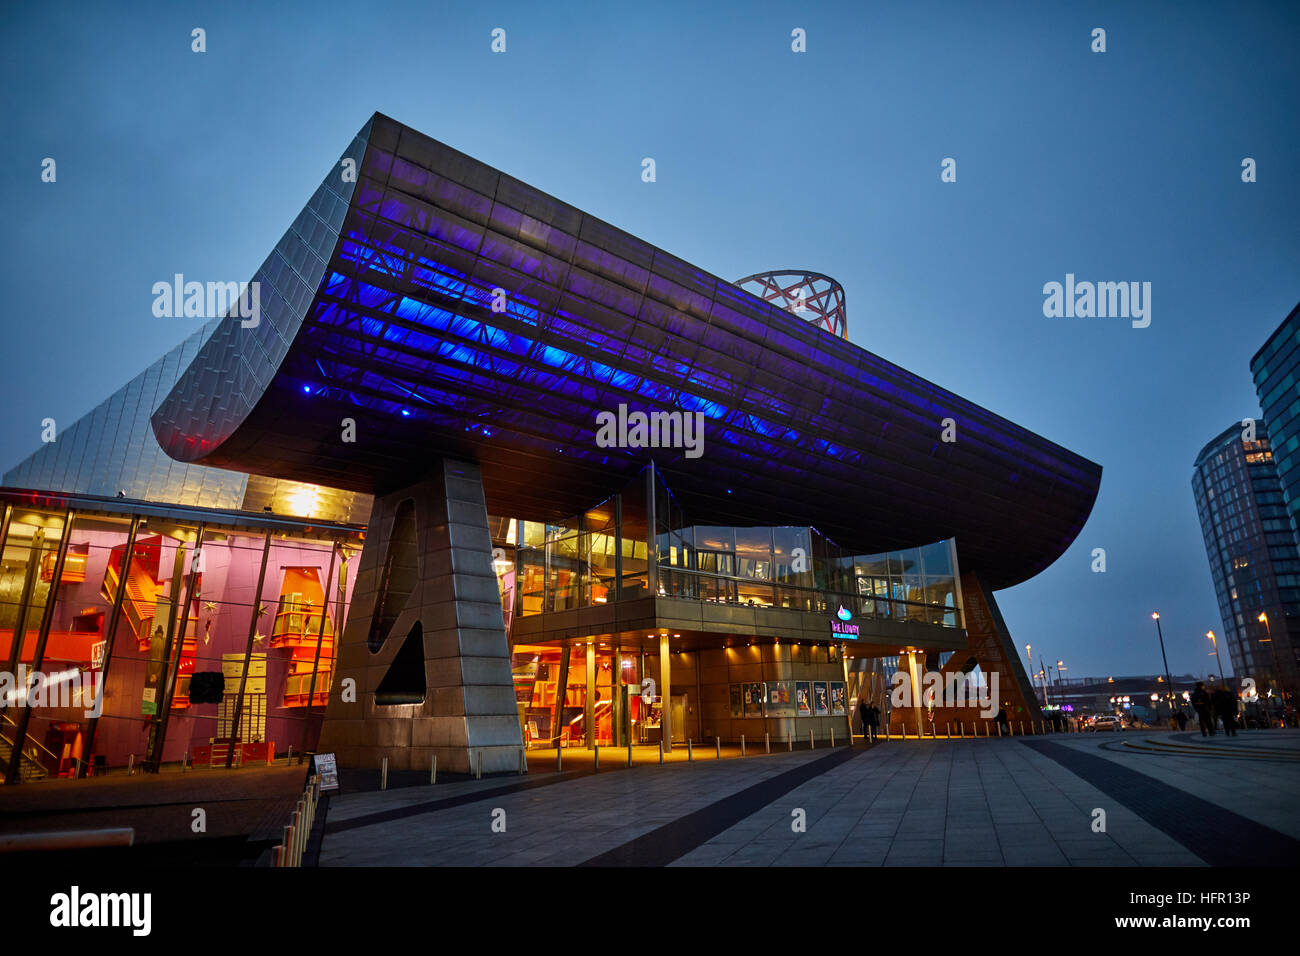 Nice Manchester Salford Lowry Art Theatre Center Architect Property Properties  Building Development Developed Structure Property Architectural Design De